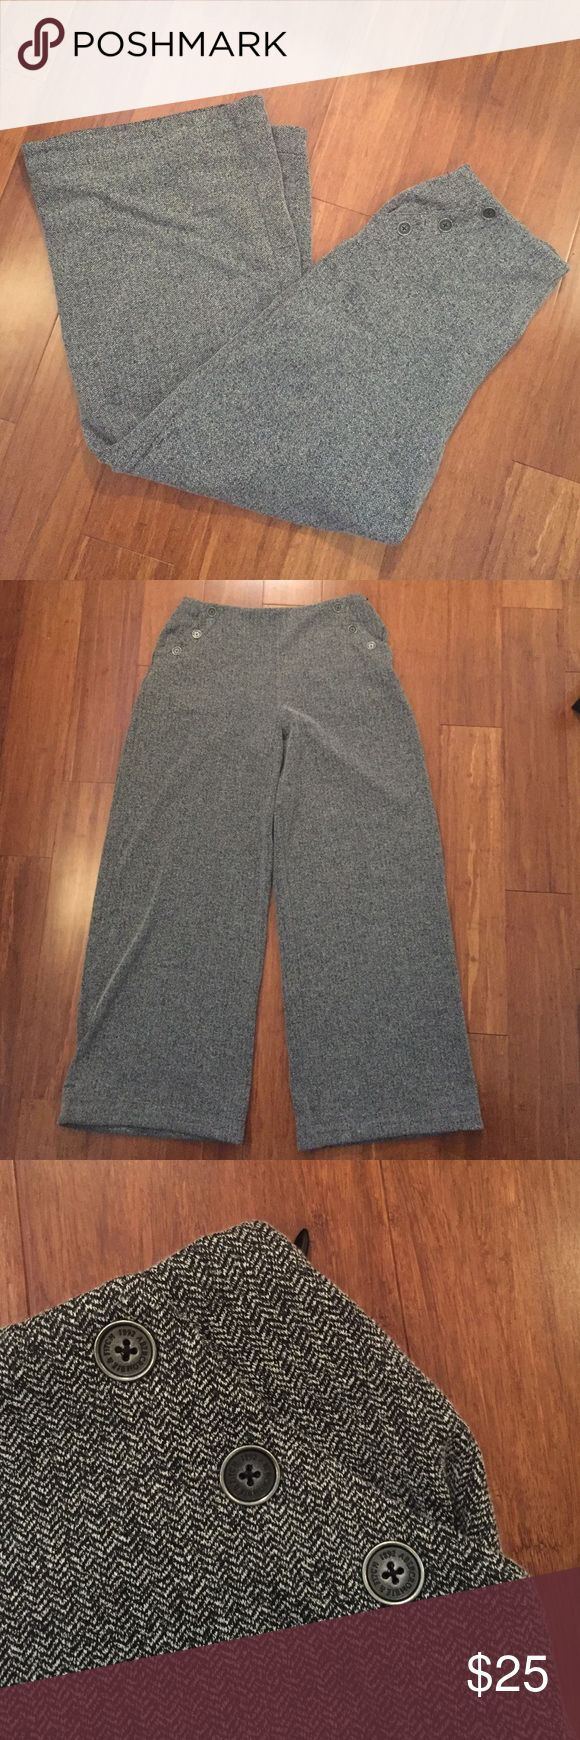 """Abercrombie & Fitch trousers NWT wide leg trousers stretch, pull on style (no zip/button closure). Black and white almost herringbone looking pattern. 70% polyester, 30% cotton. Inseam 32"""" Abercrombie & Fitch Pants Wide Leg"""